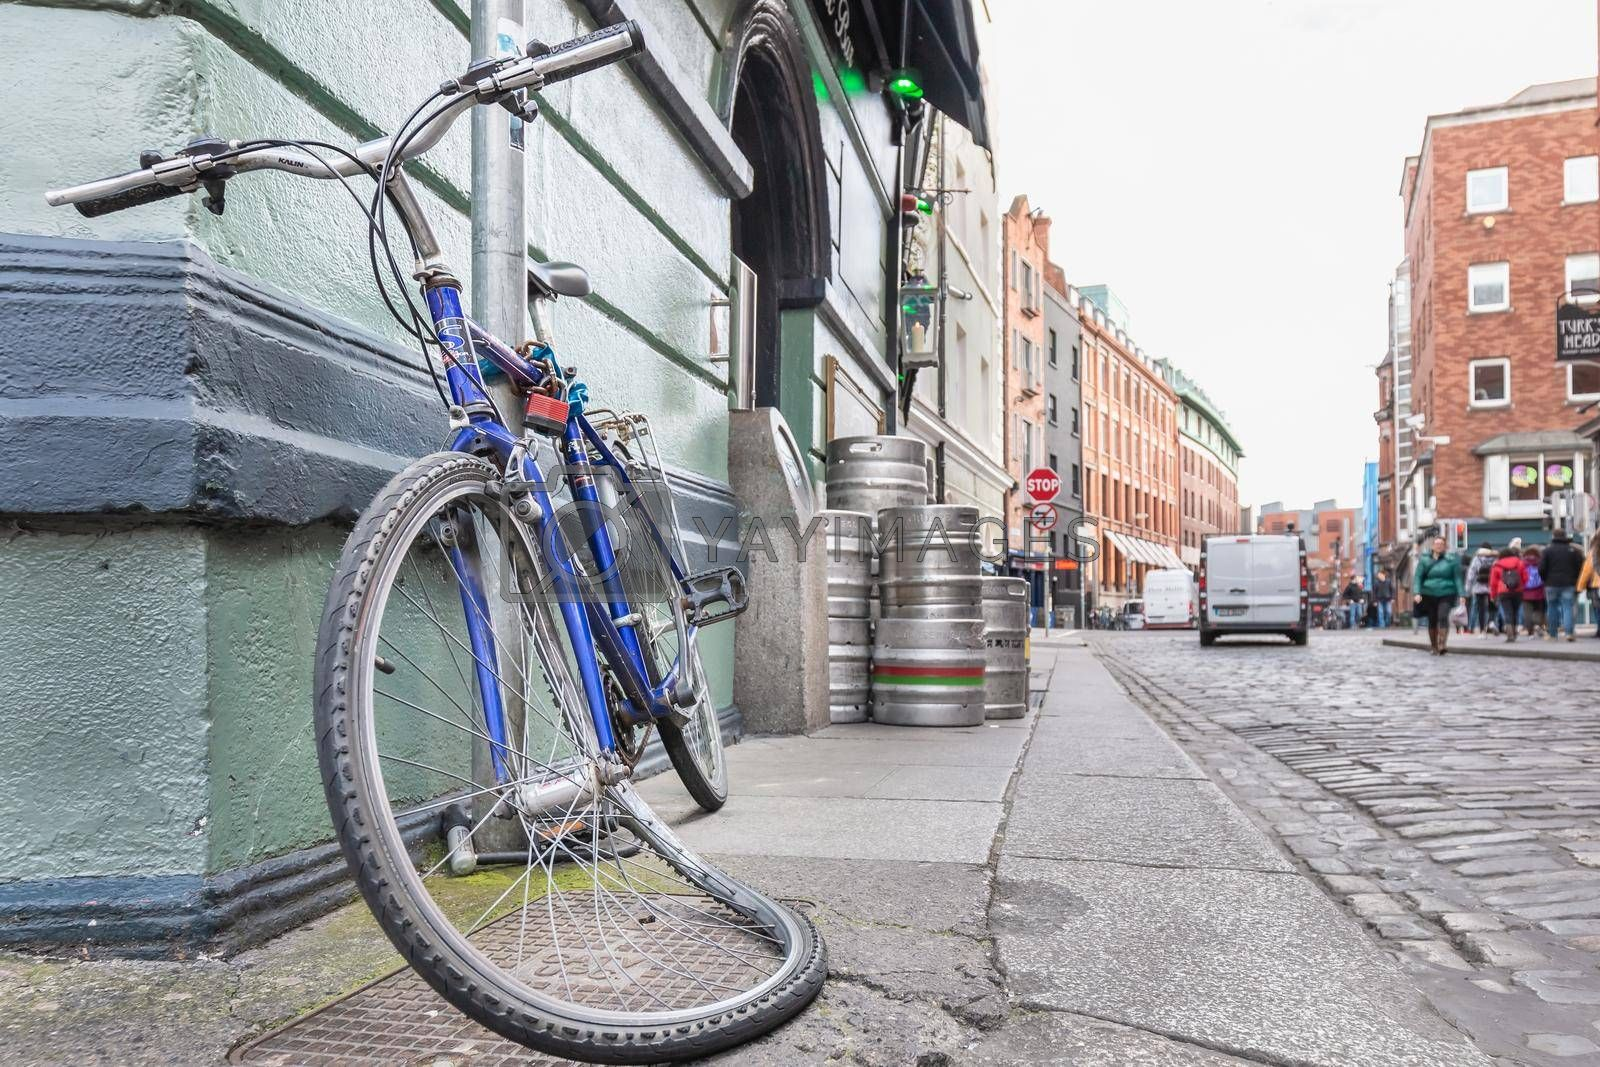 Dublin, Ireland - February 16, 2019: Vandalized bicycle tied up in the city center on a winter day